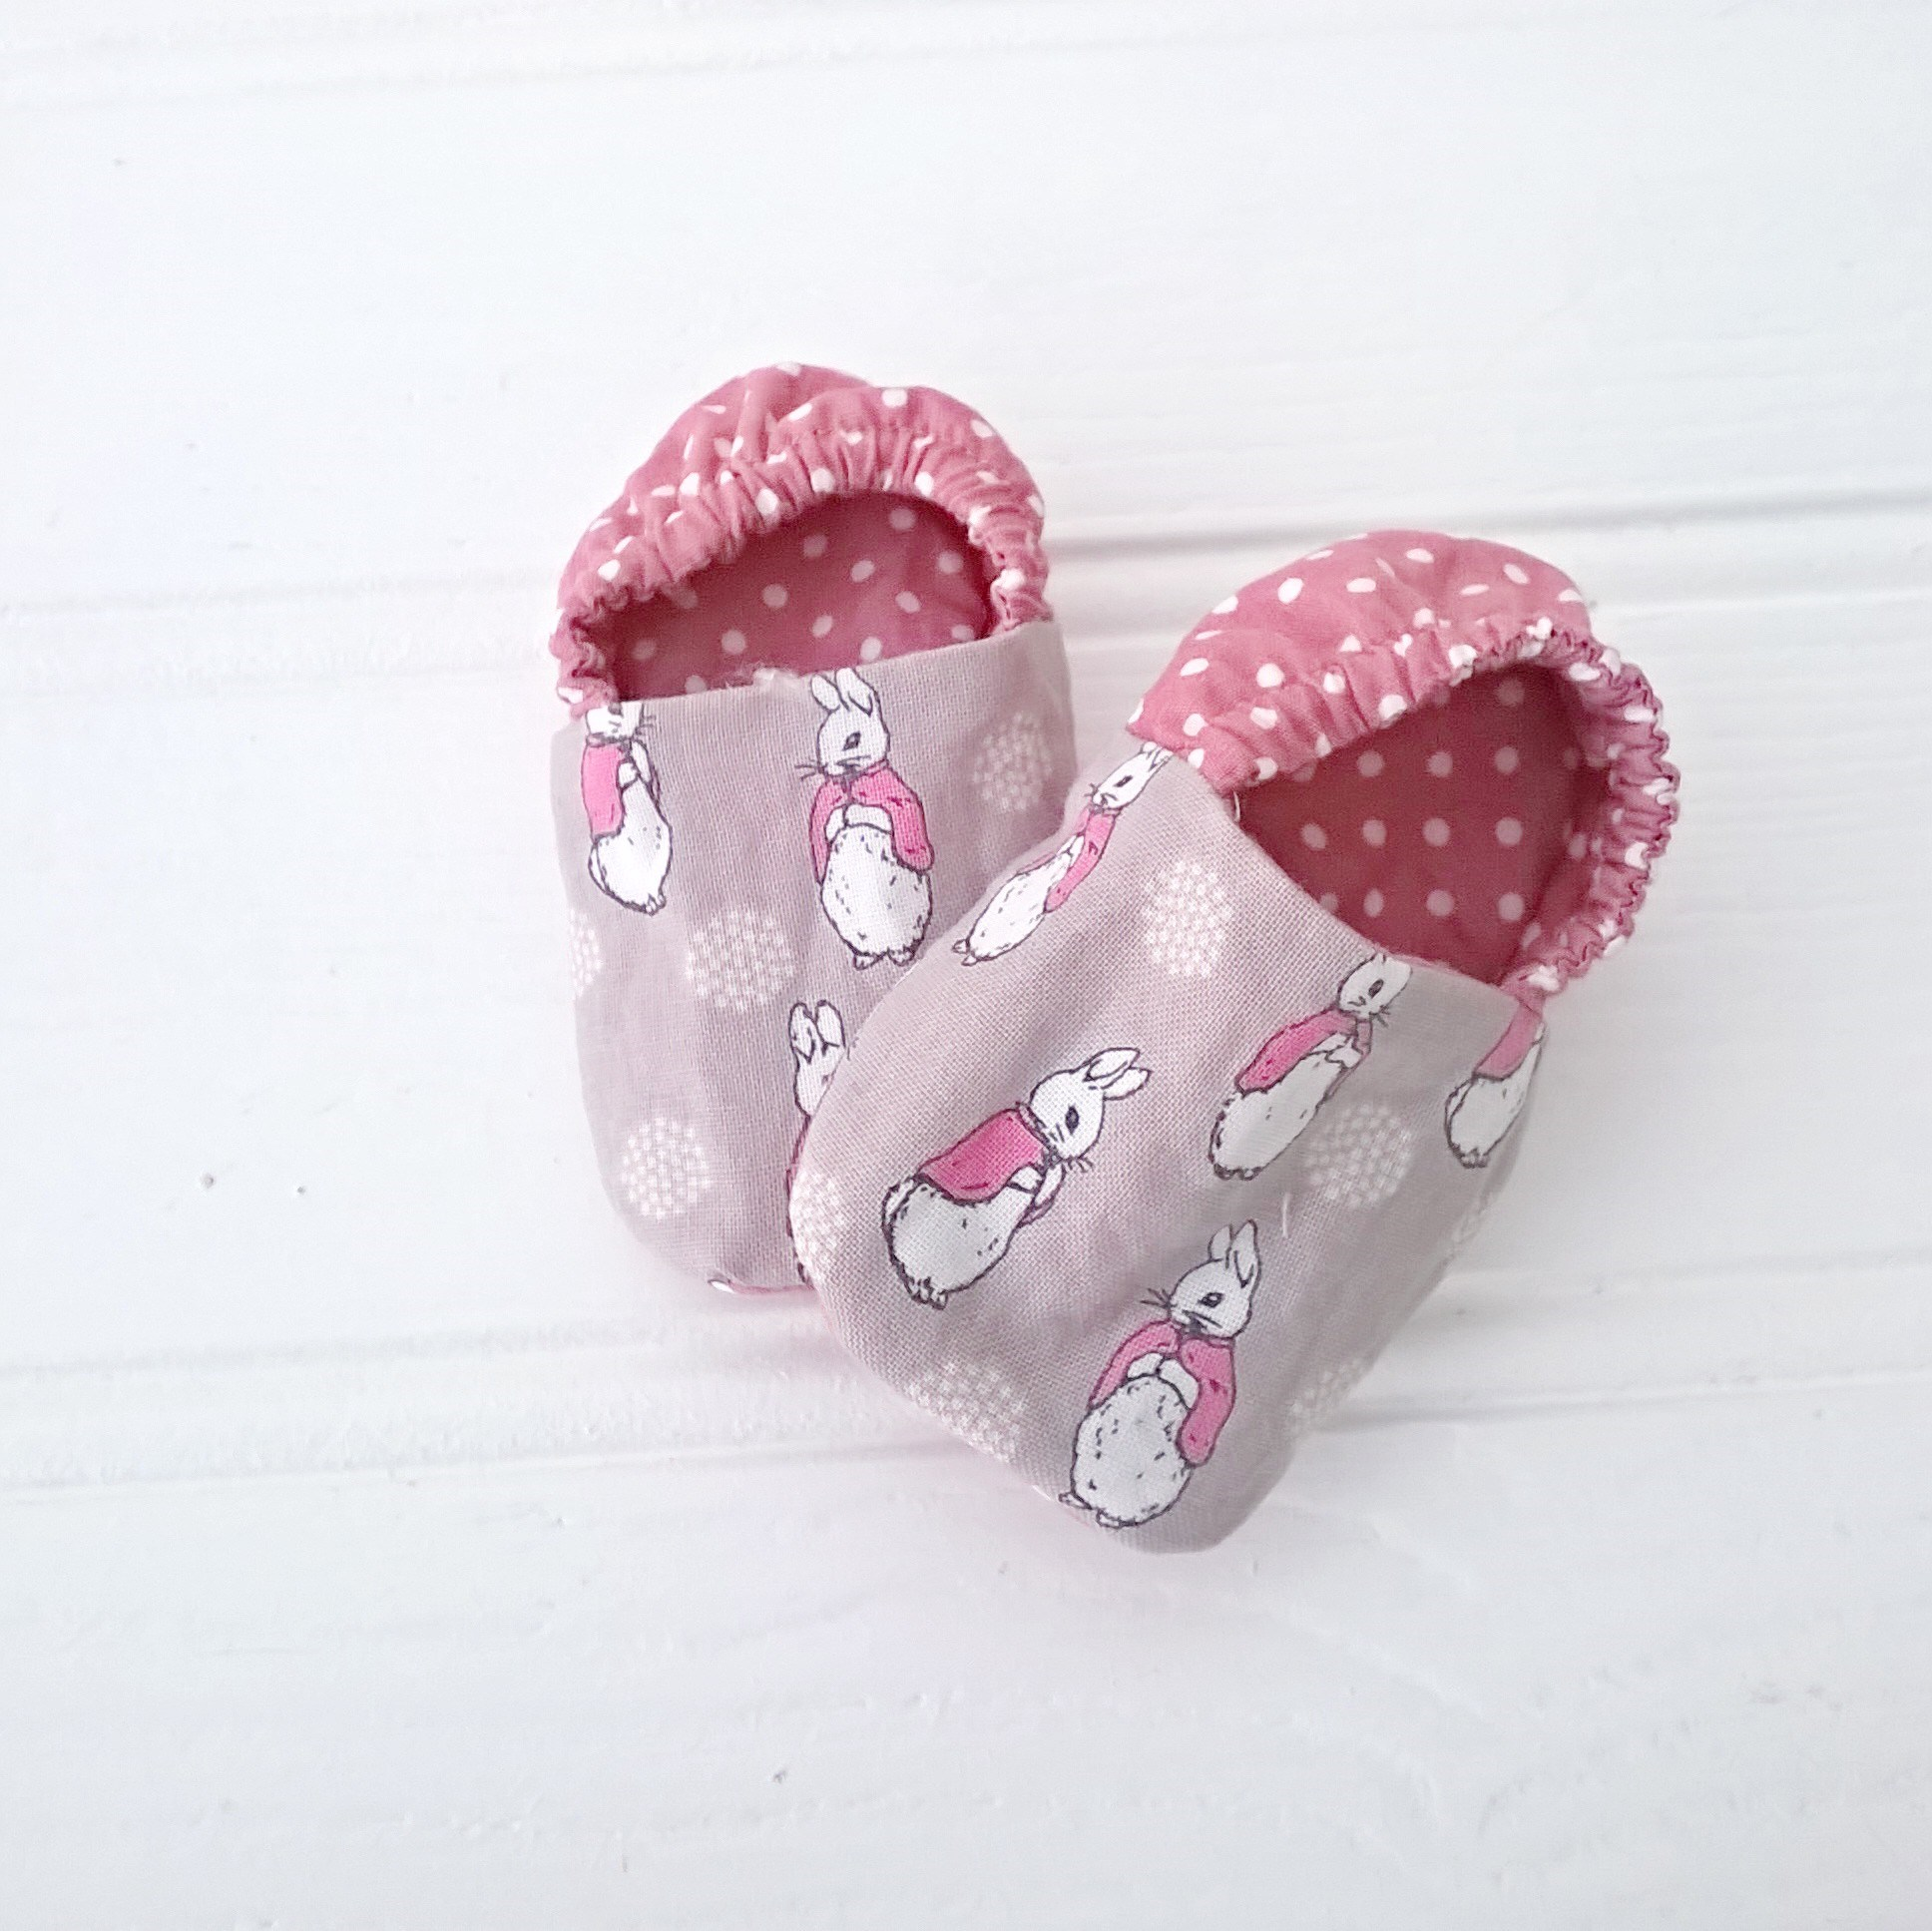 'Bea' Baby Shoes